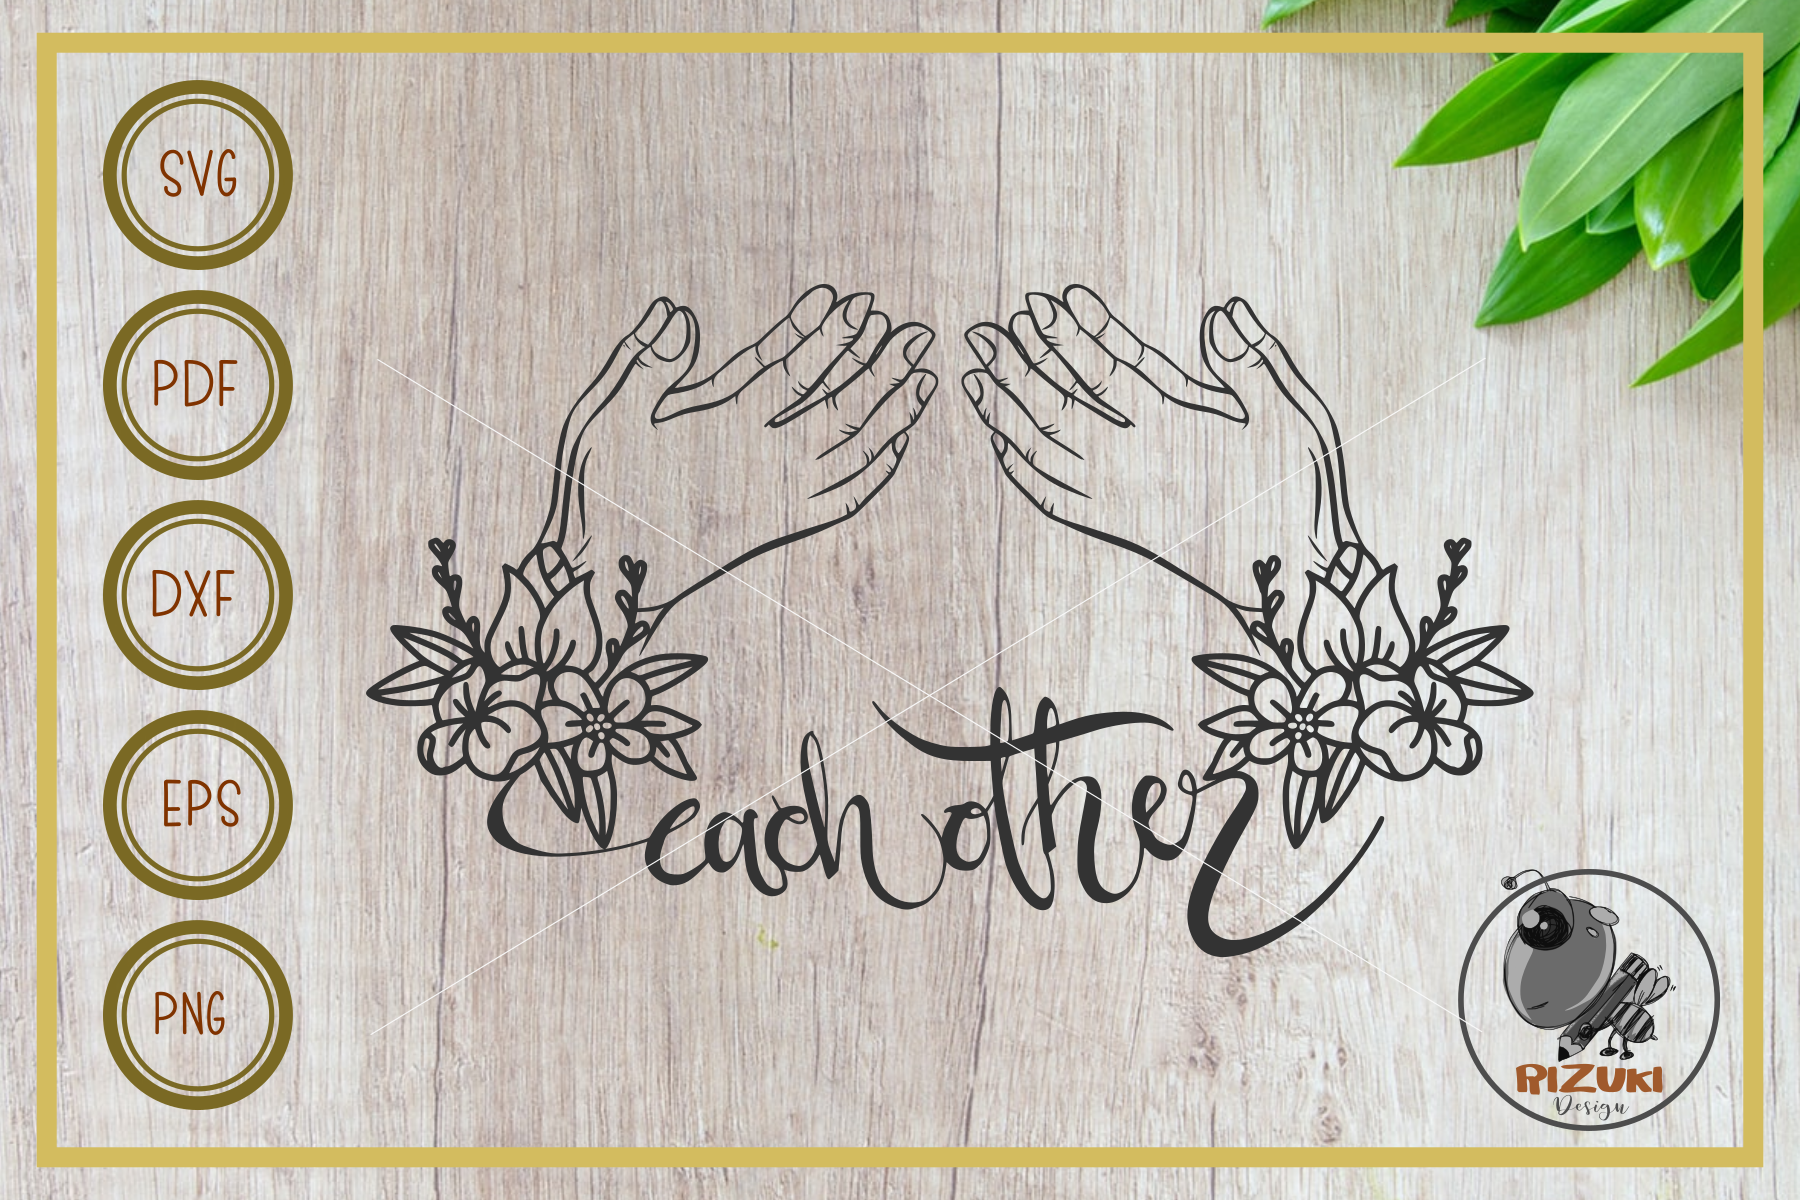 Pray Each Other Cut File Decor Graphic By Rizuki Store